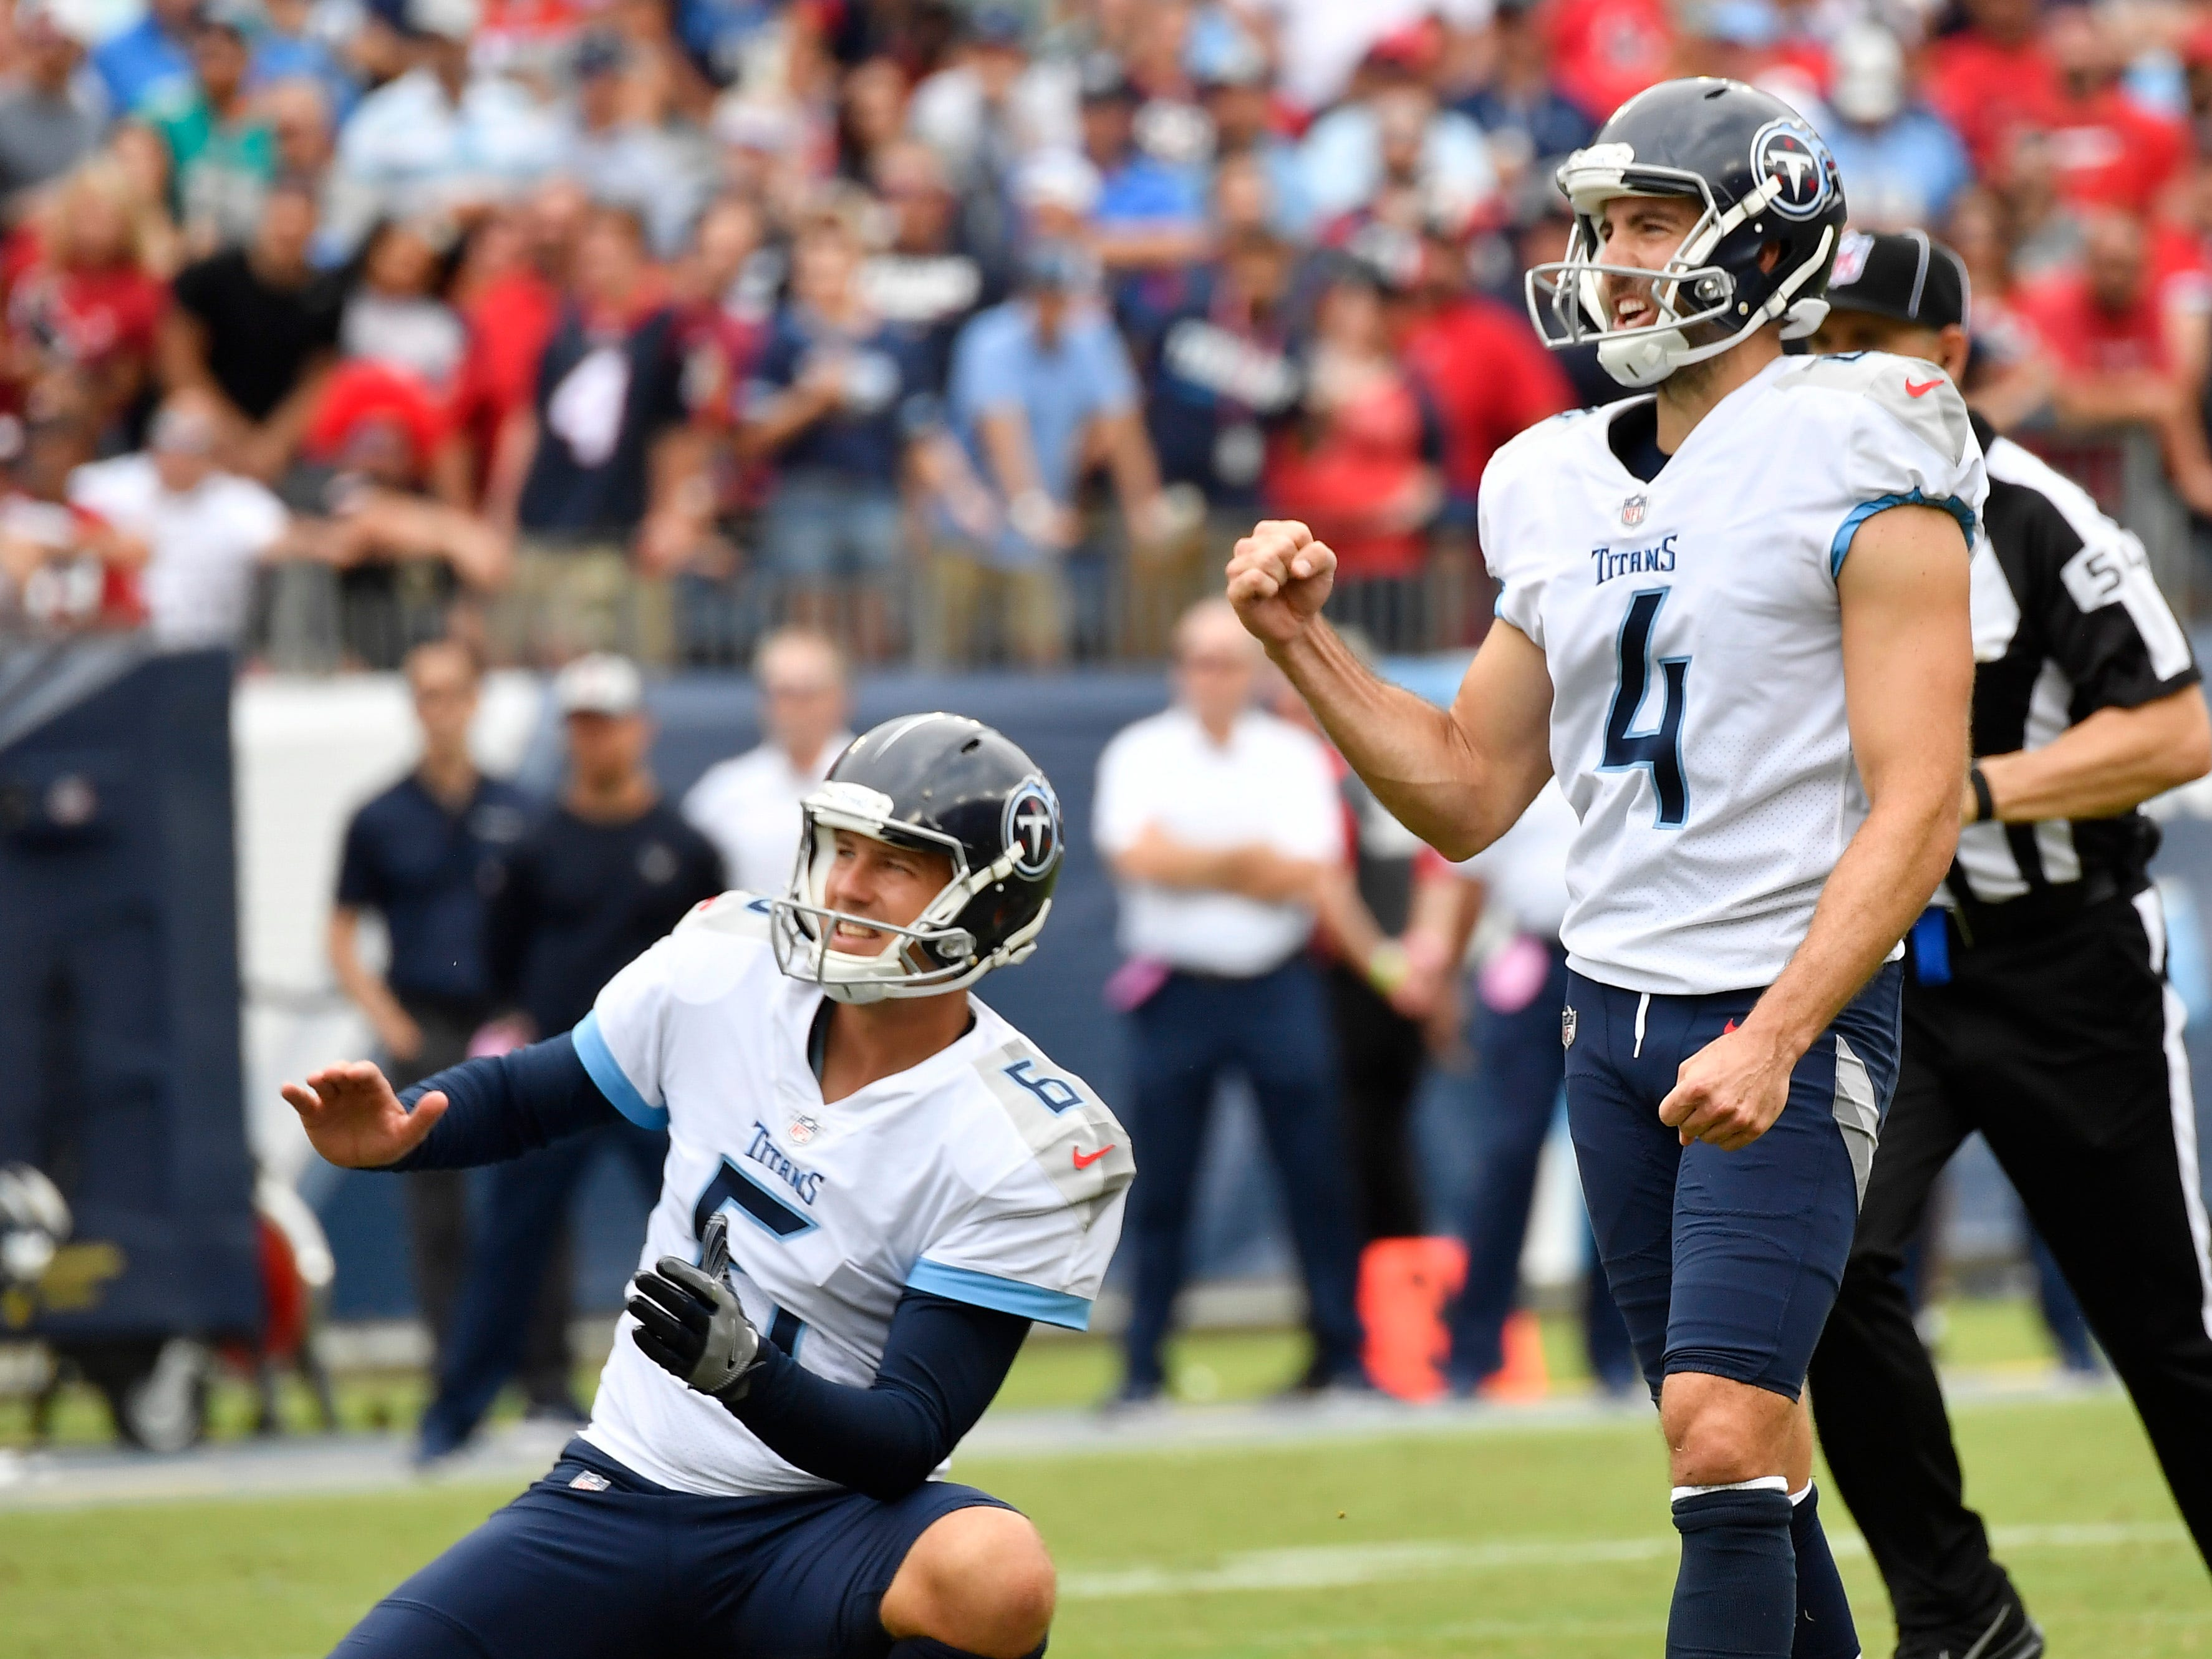 Titans place kicker Ryan Succop (4) and punter Brett Kern (6) celebrate Succop's field goal that tied the game in the second half at Nissan Stadium Sunday, Sept. 16, 2018, in Nashville, Tenn.